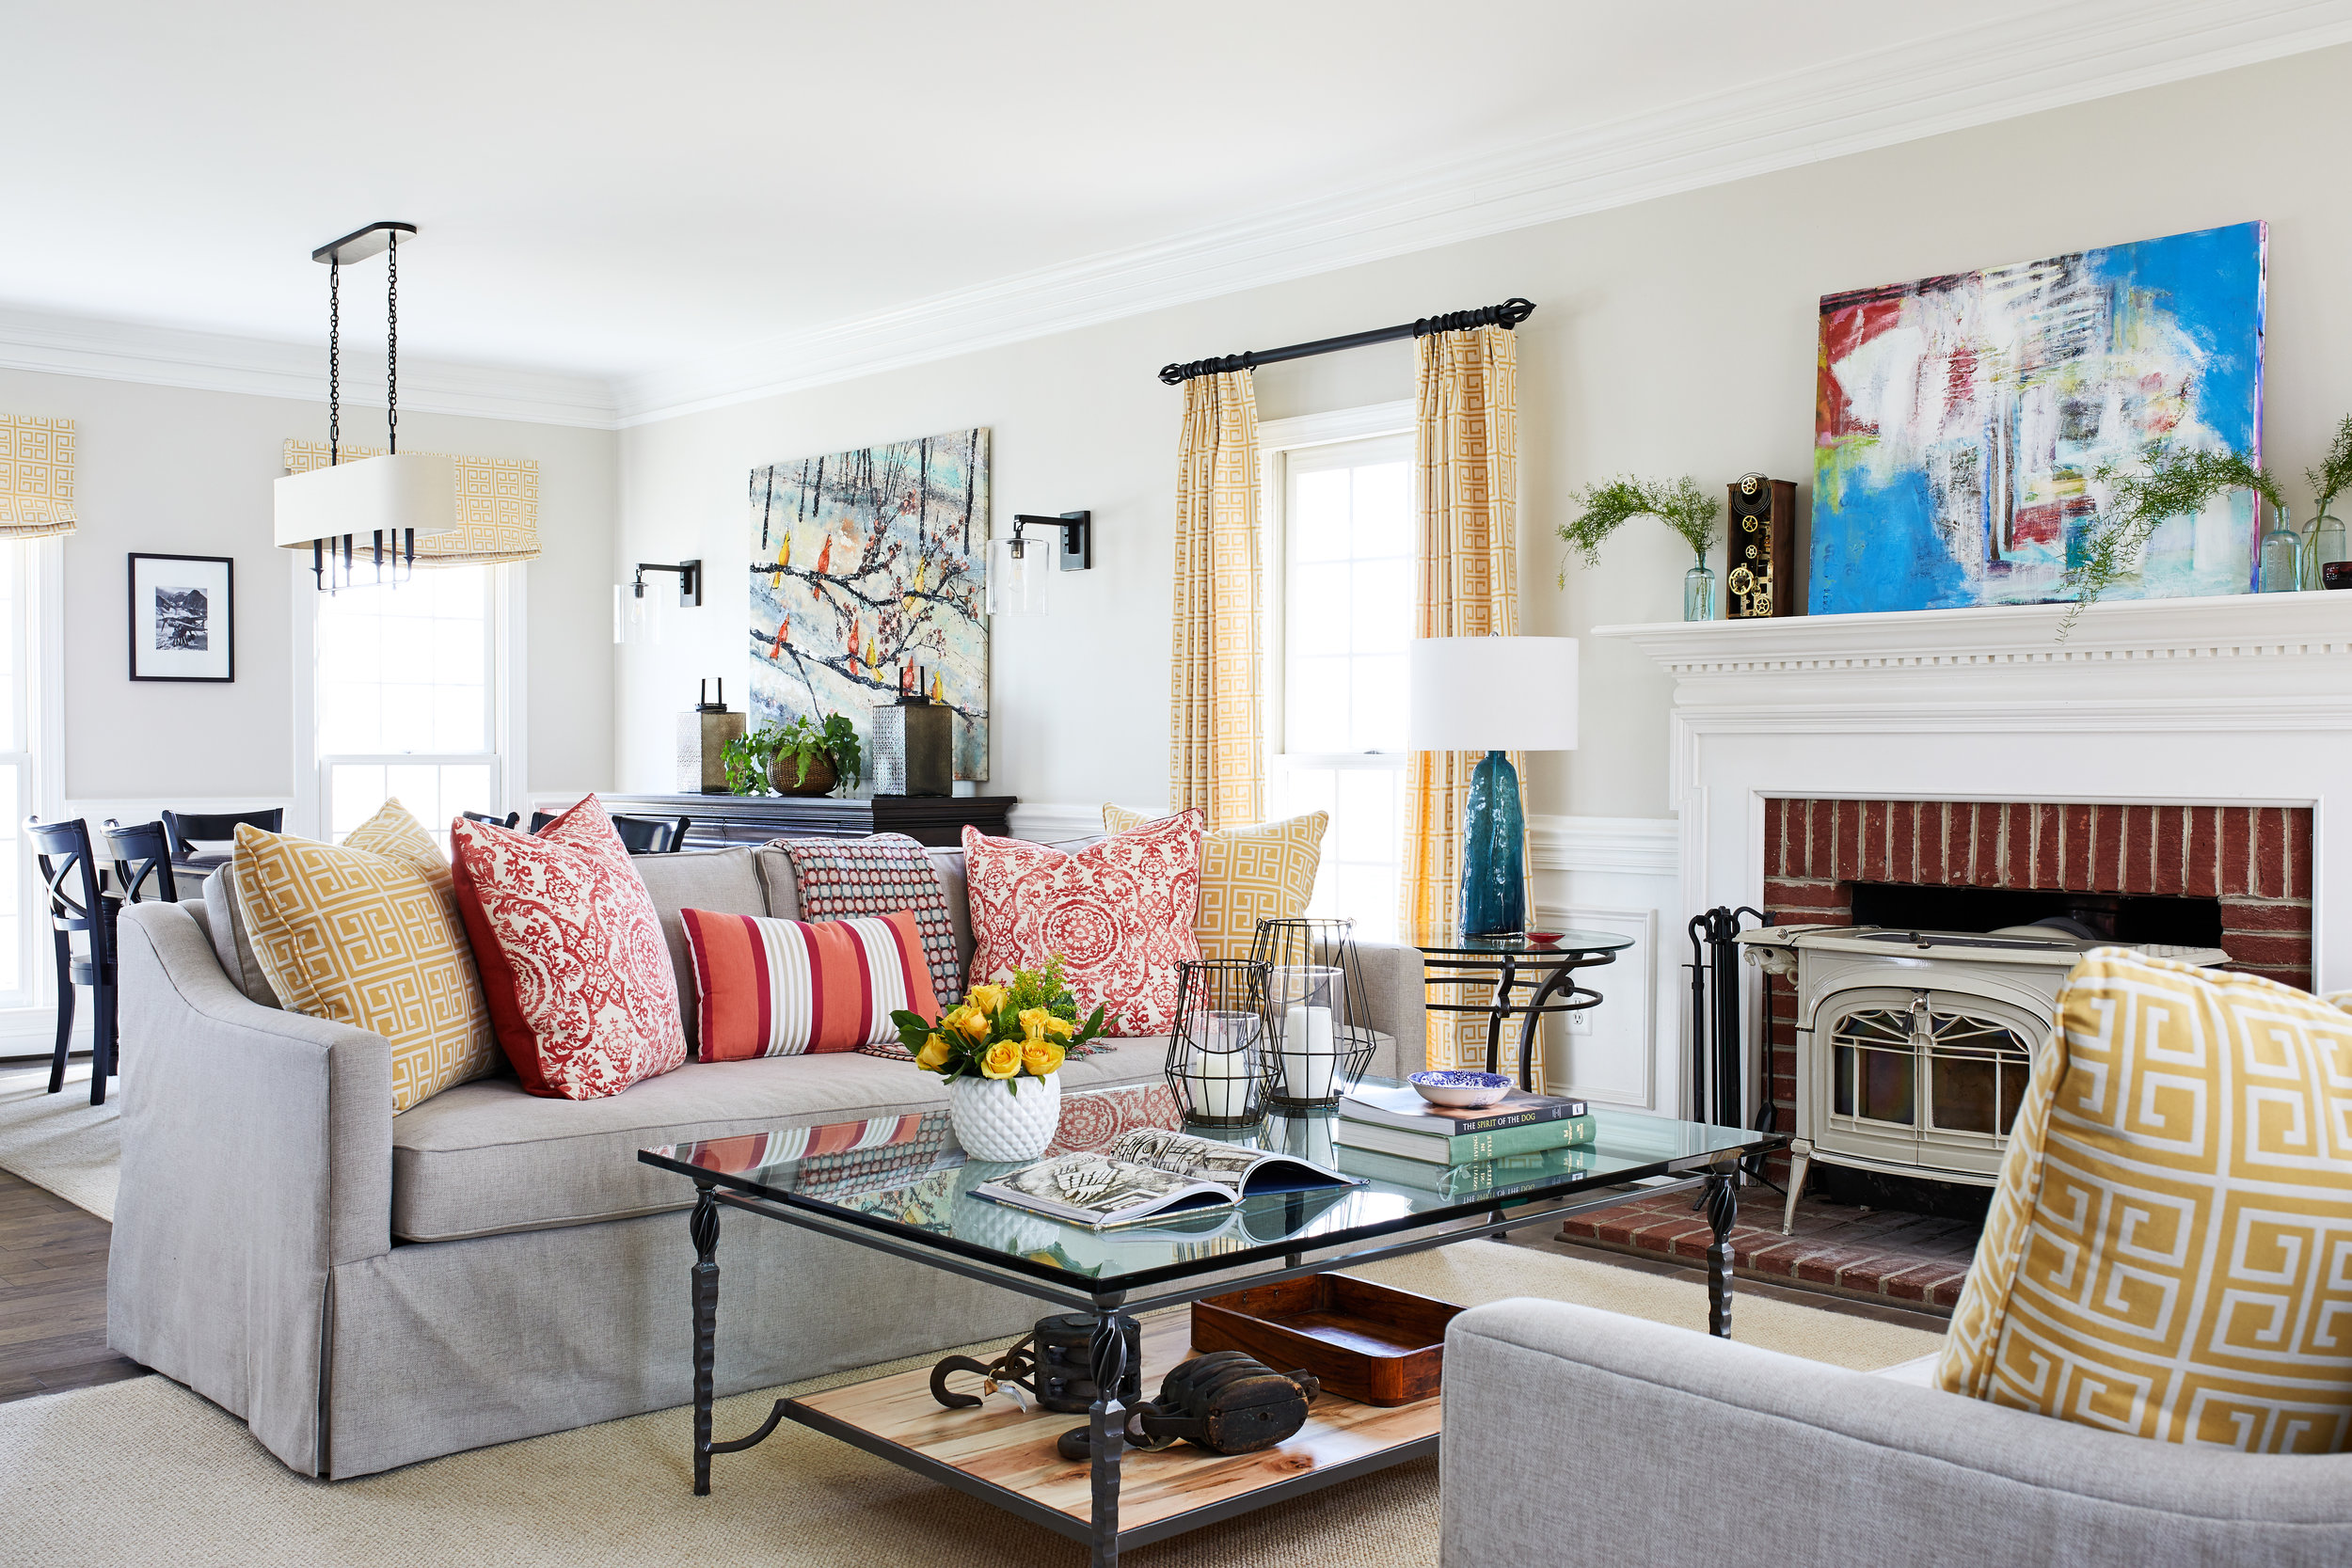 Colorful pillows keep this vibrant space expressive, while the upholstery itself is in a livable grey. See more of our  Bluemont House project , published in Home & Design Magazine.